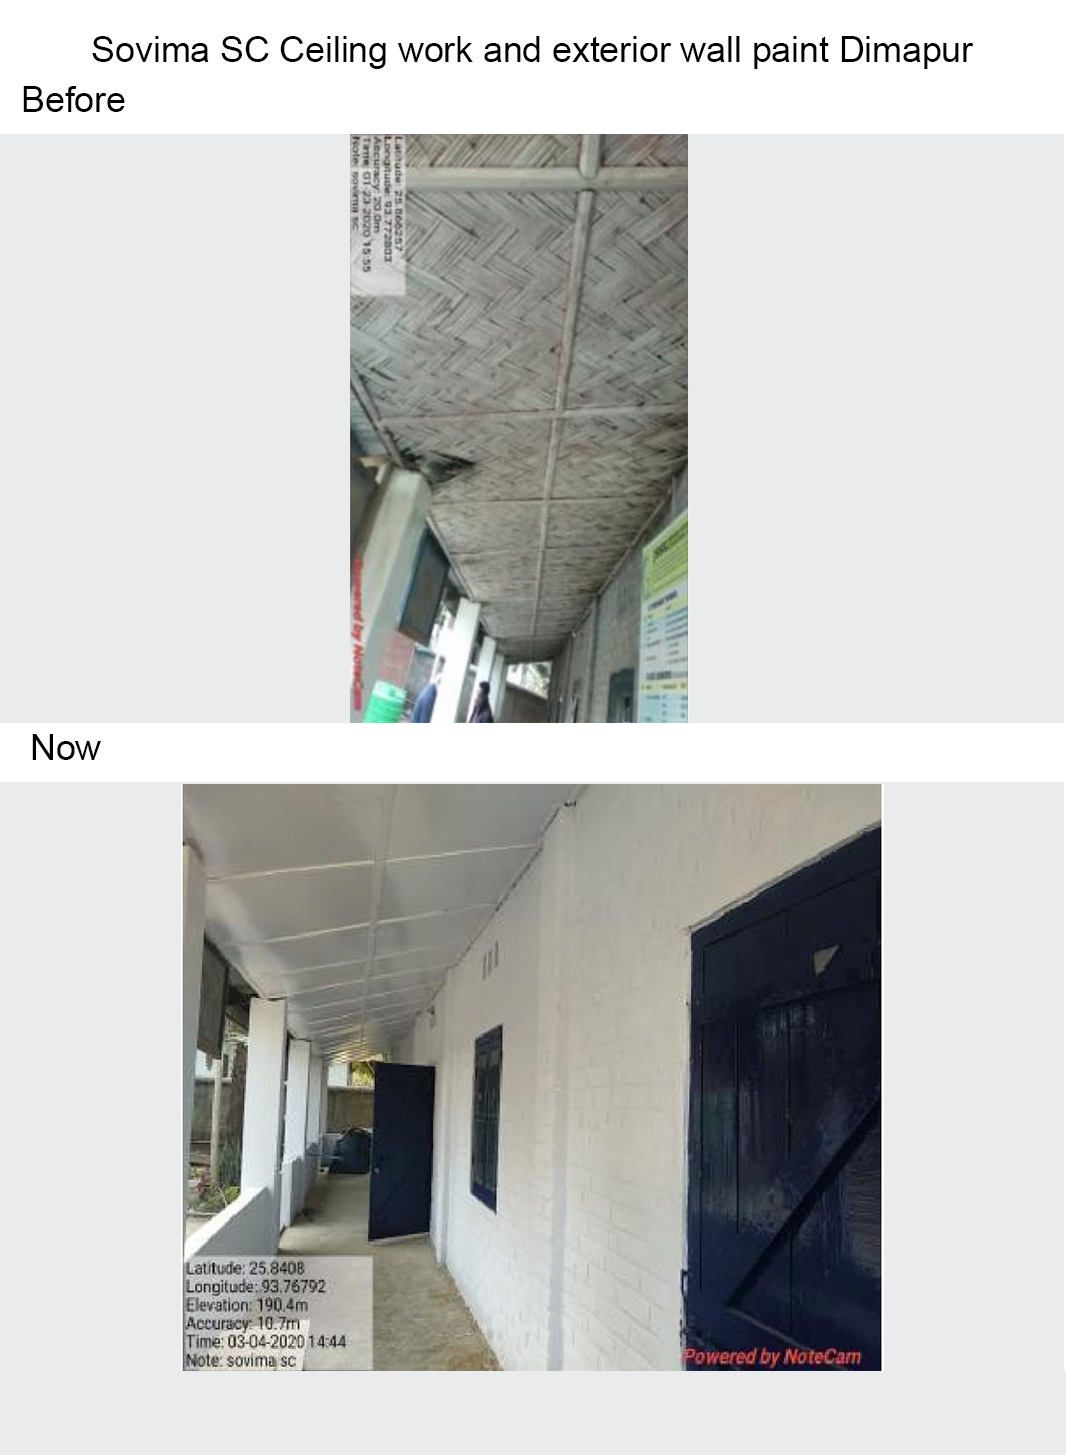 Sovima-SC-Ceiling-work-and-exterior-wall-paint-Dimapur